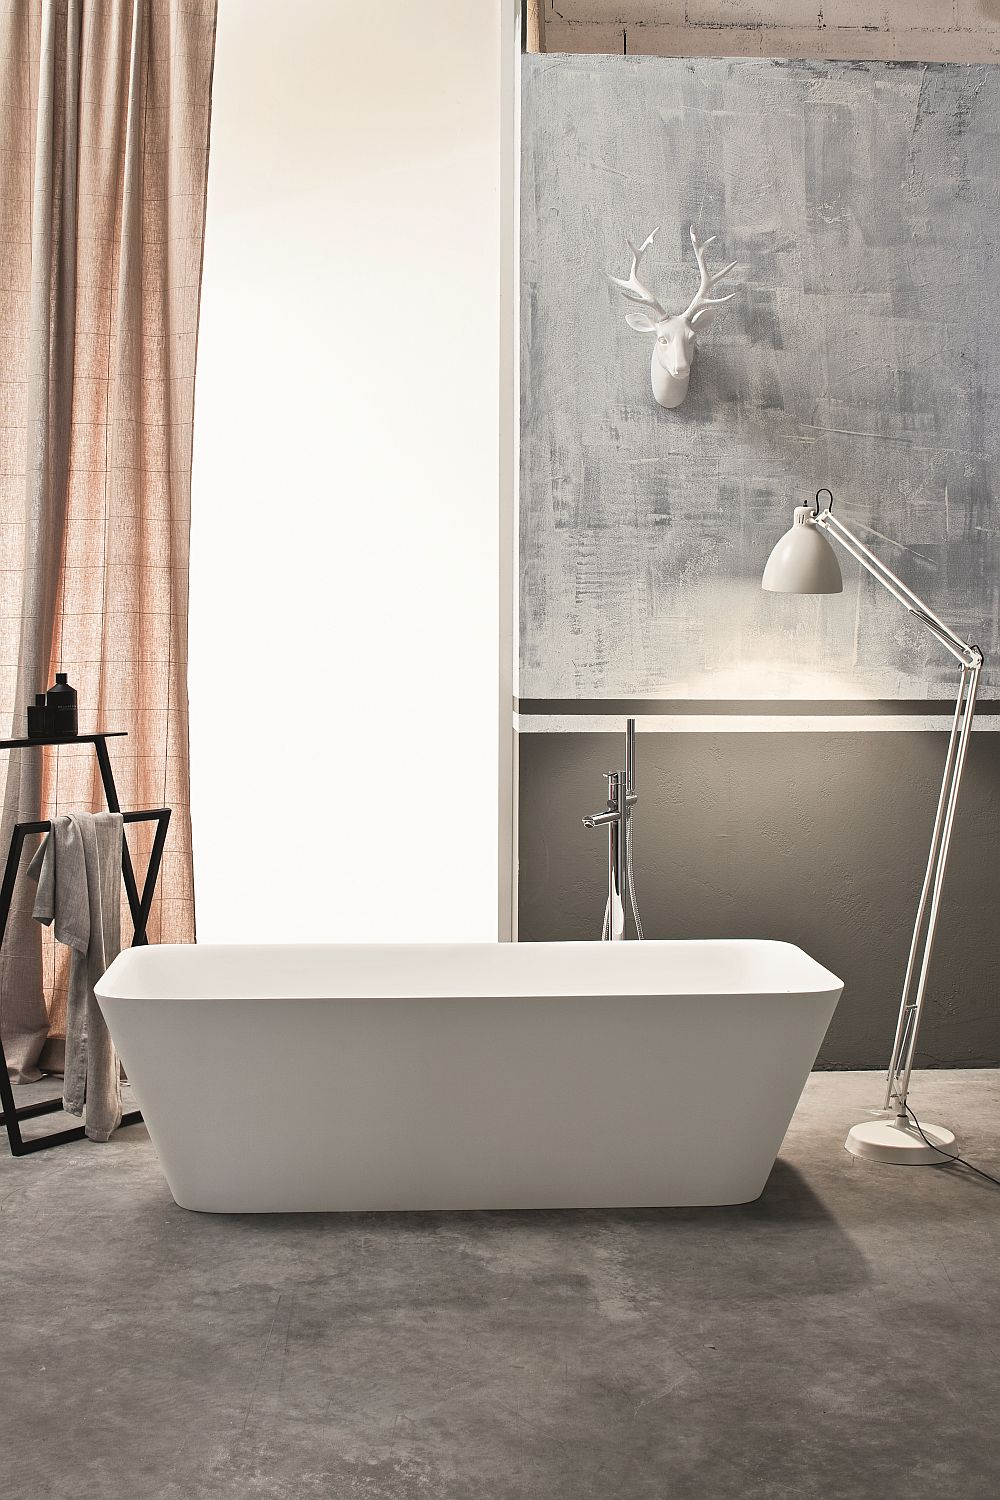 Goregous freestanding bathtub combines rounded edges with a contemporary design